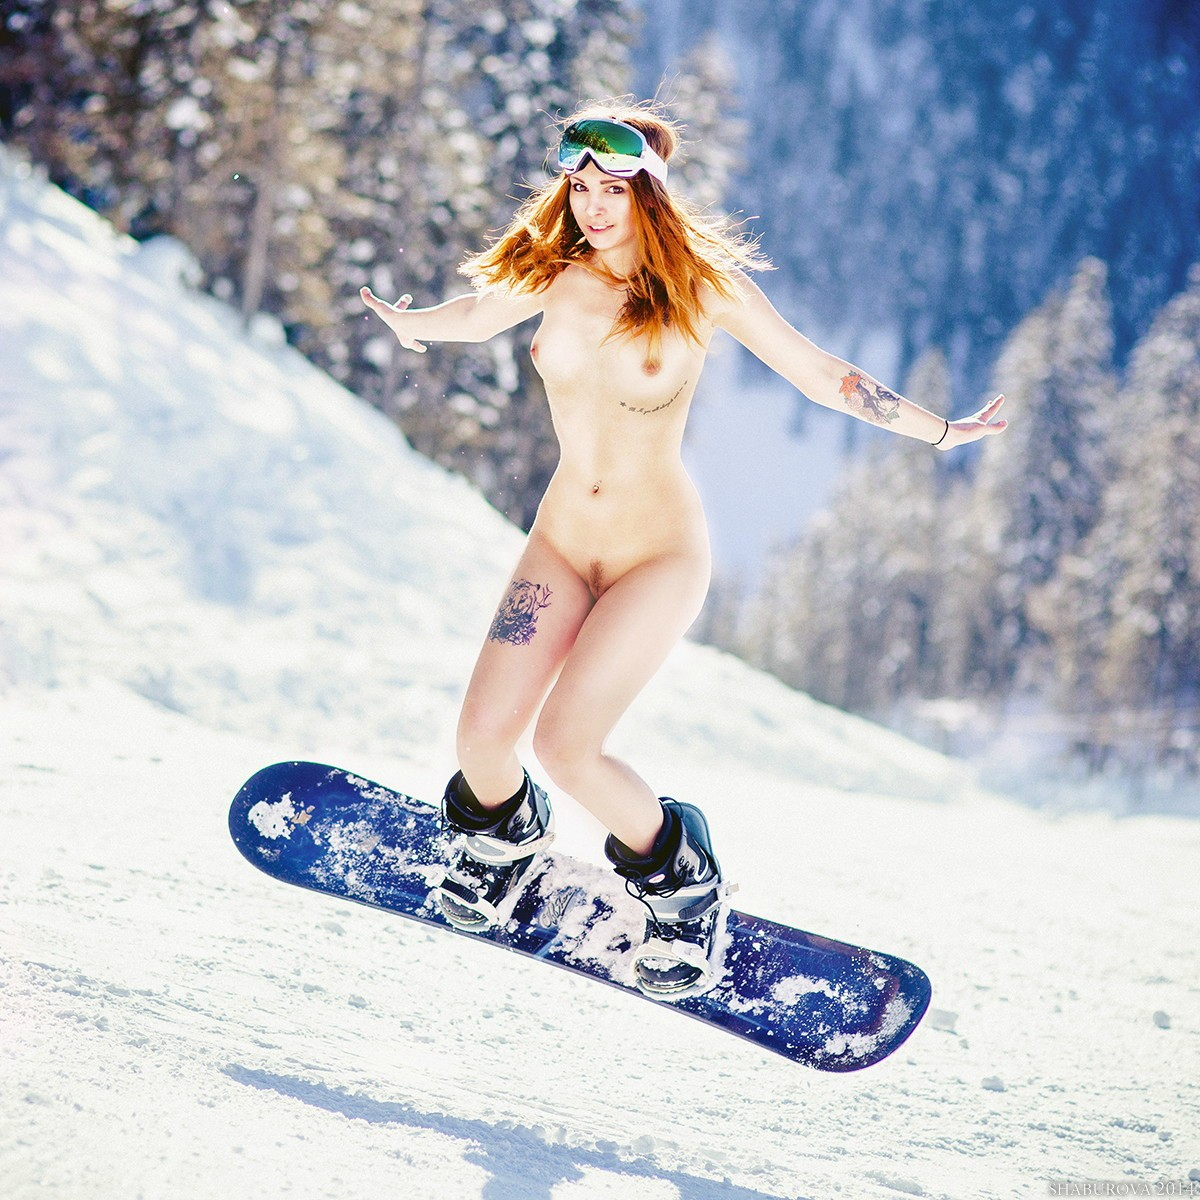 Snowboarding and sex